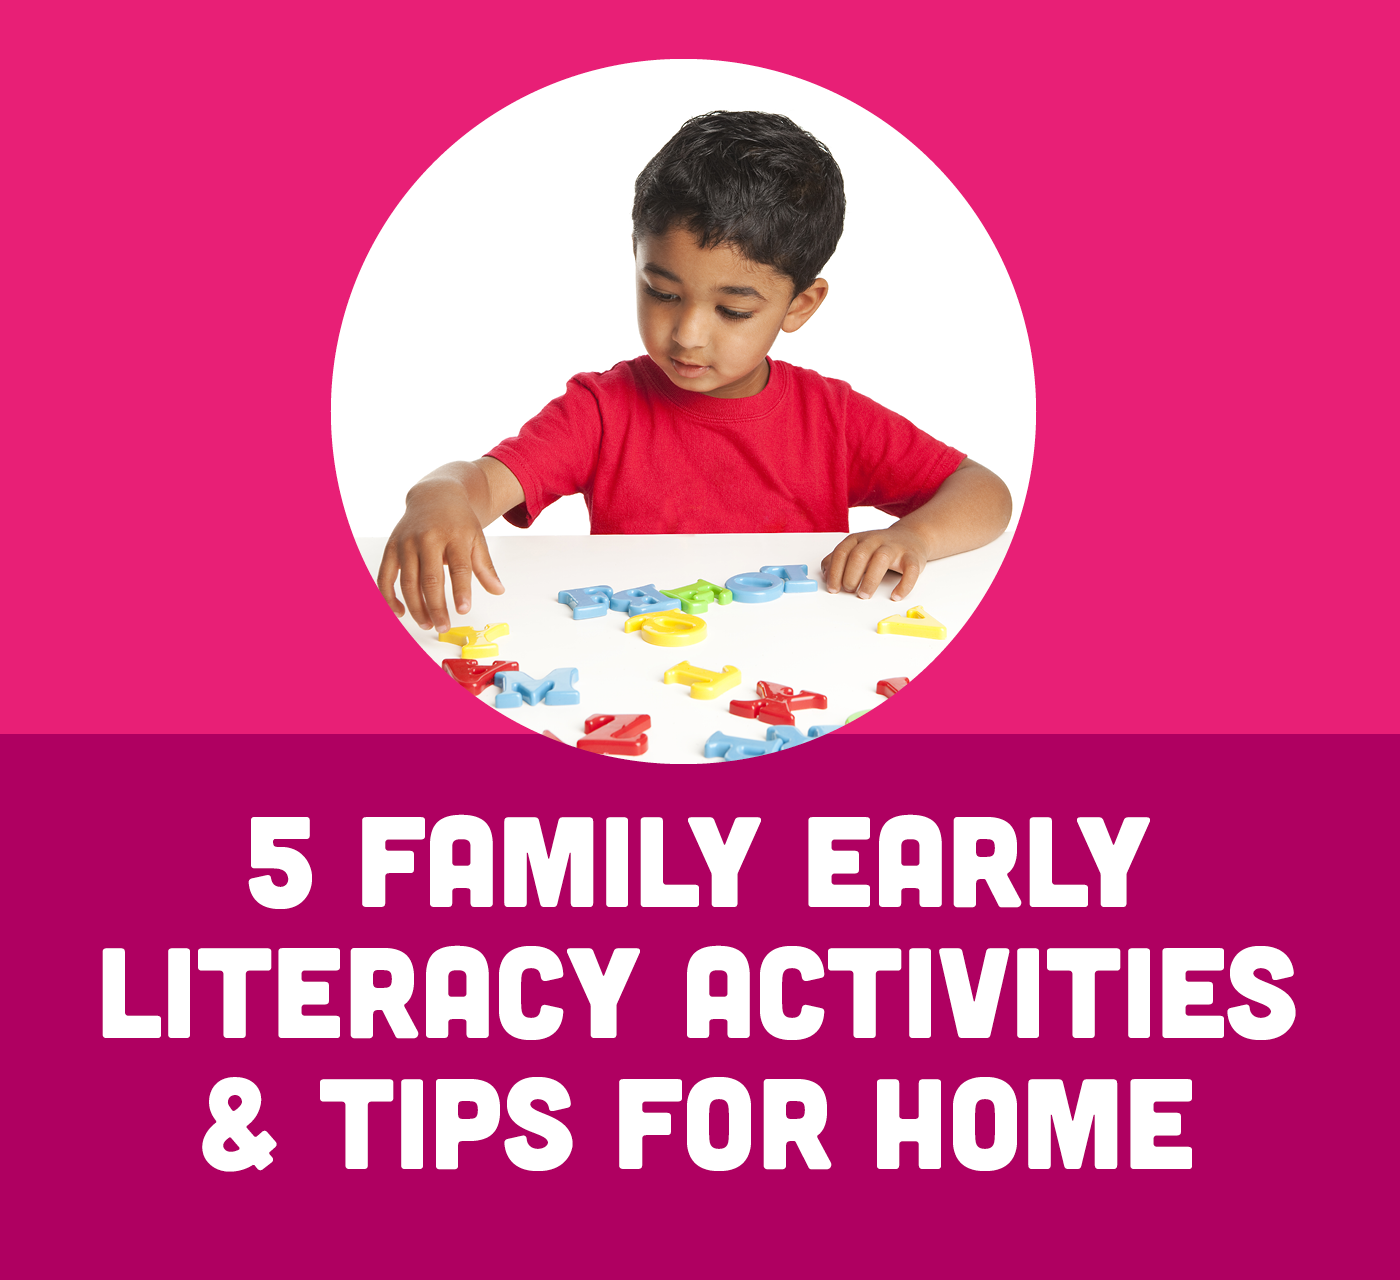 5 Family Early Literacy Activities & Tips for Home